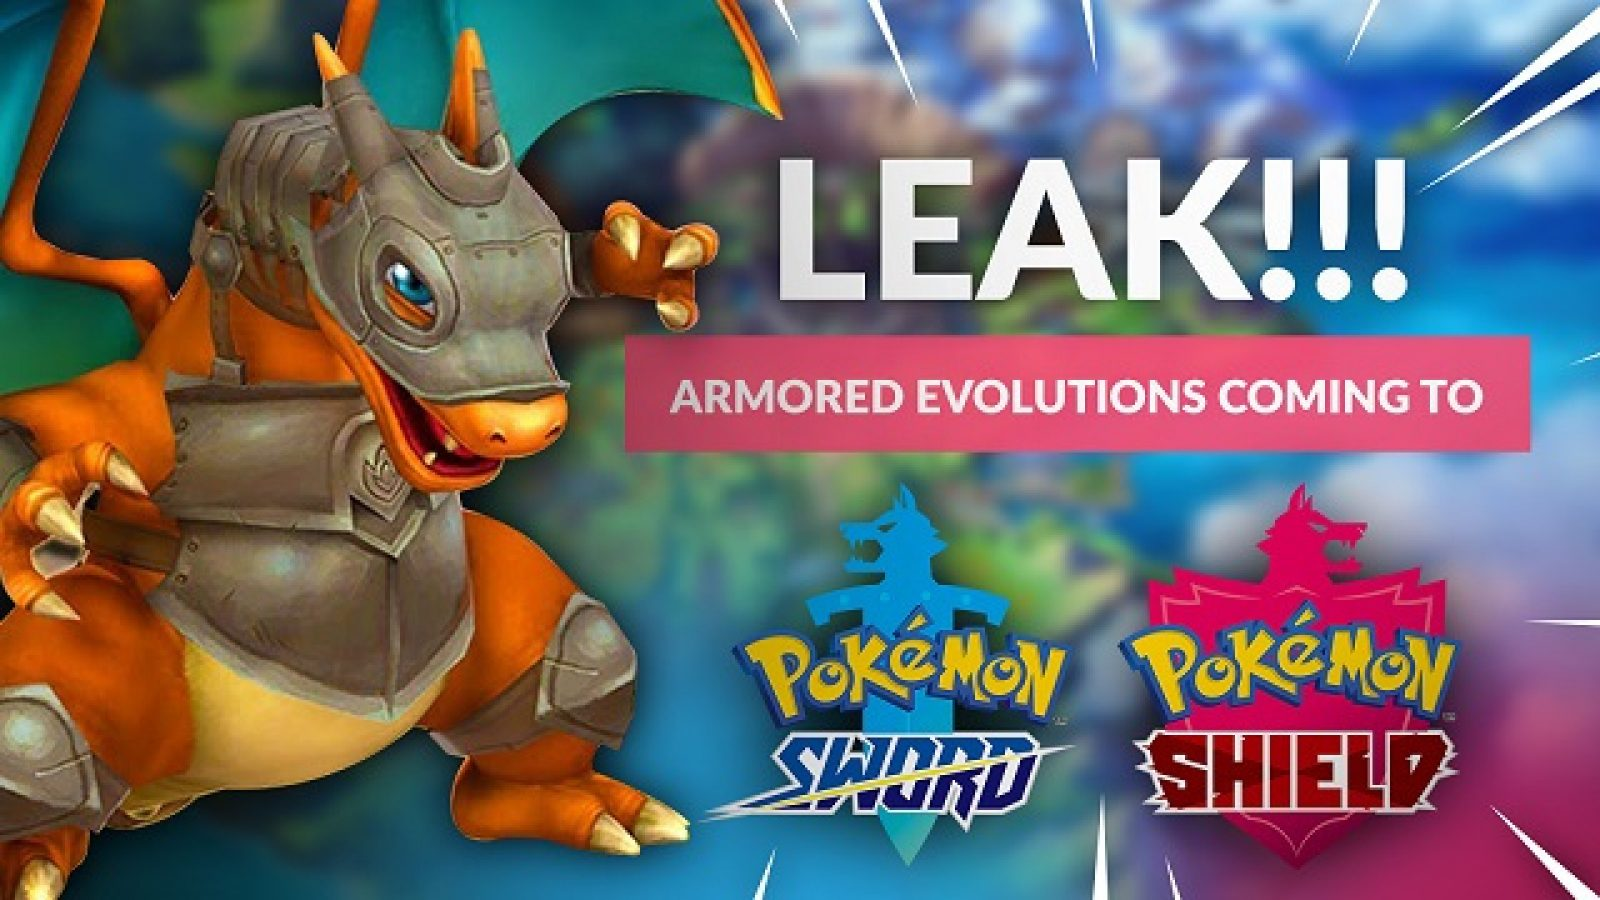 Pokemon Sword And Shield: News, Trailer, And Release Date